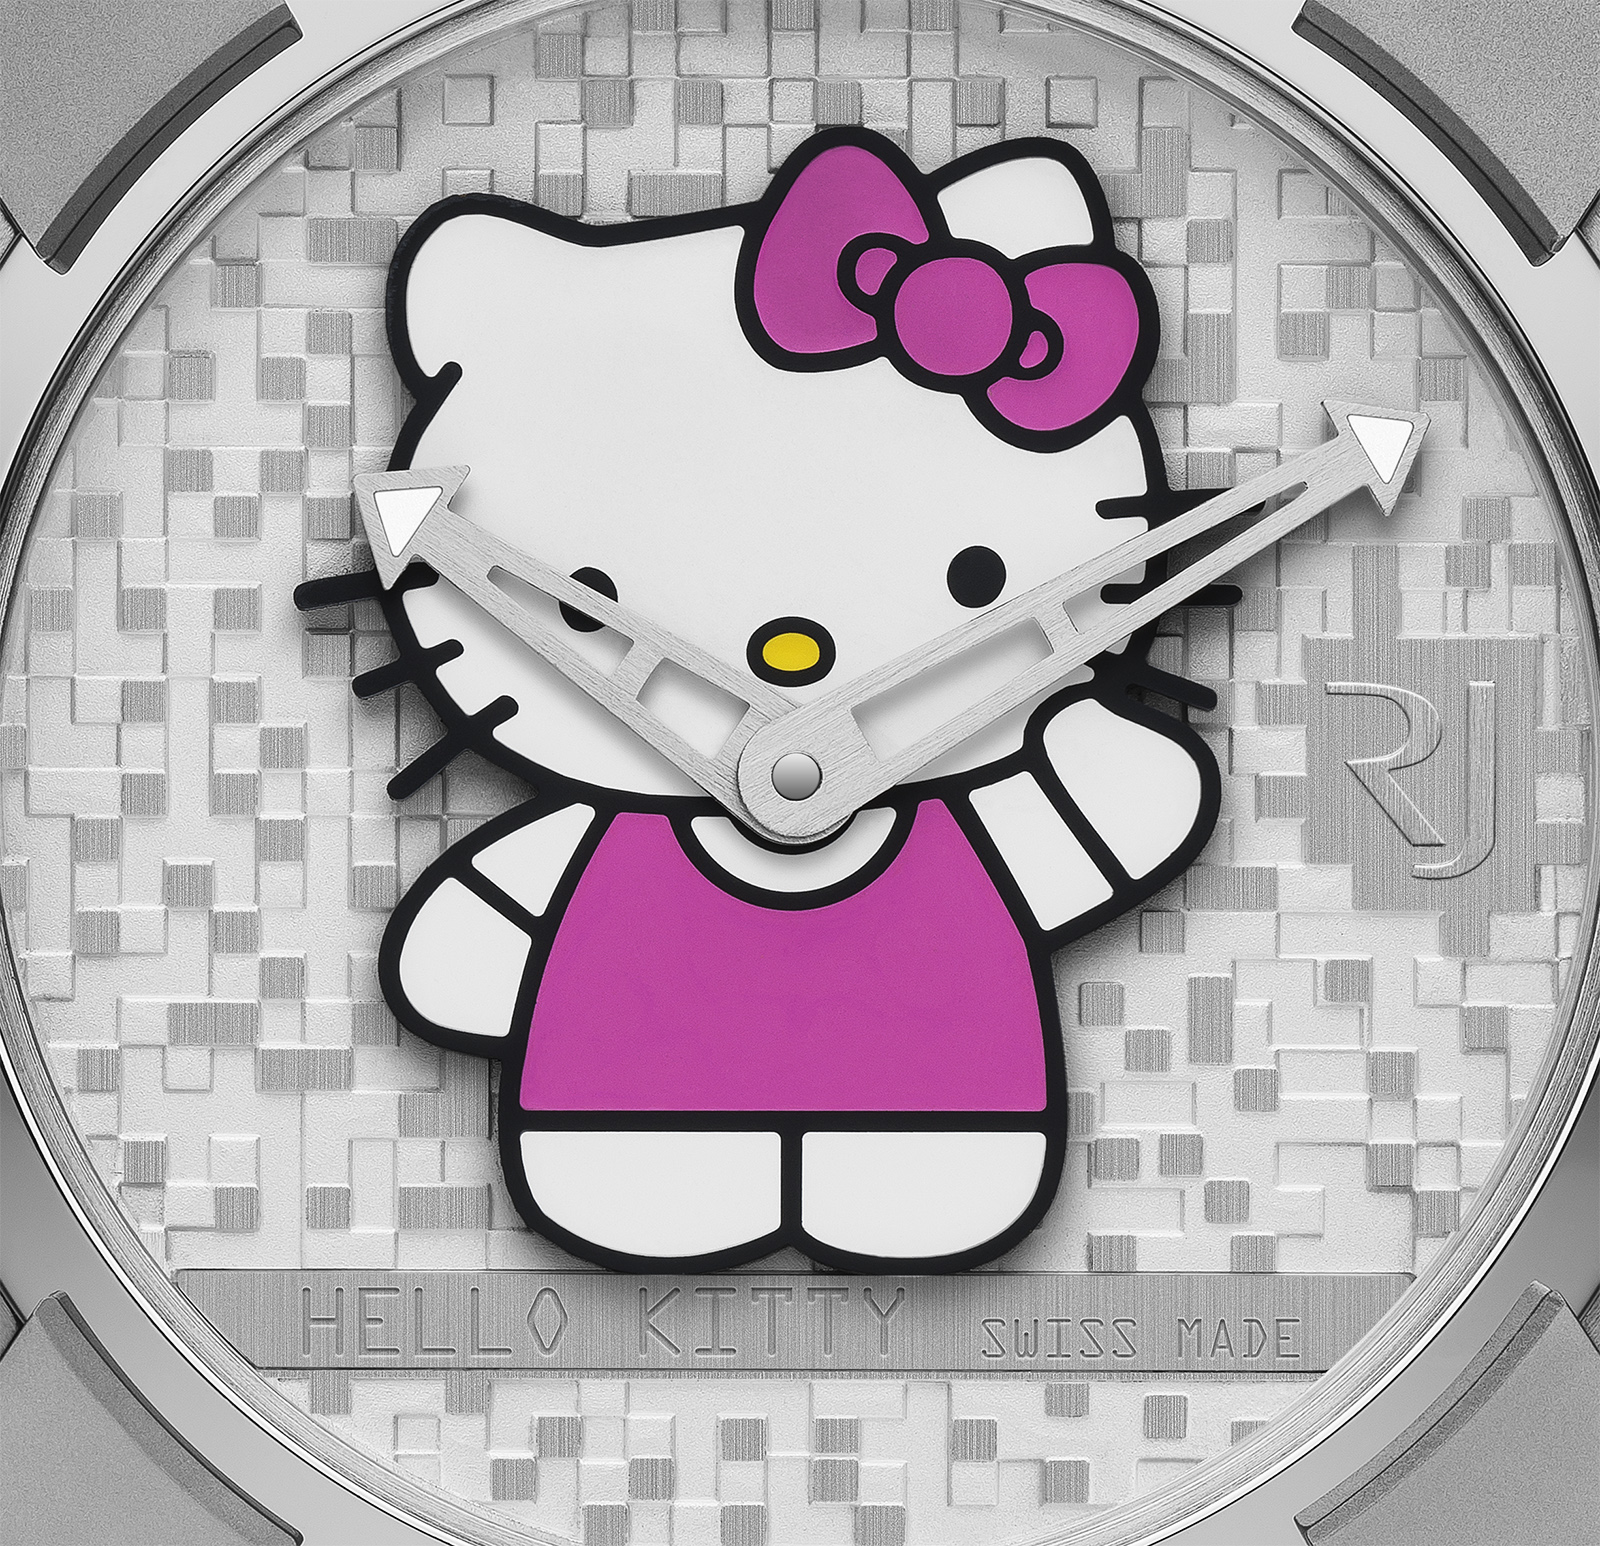 Romain Jerome Hello Kitty 5